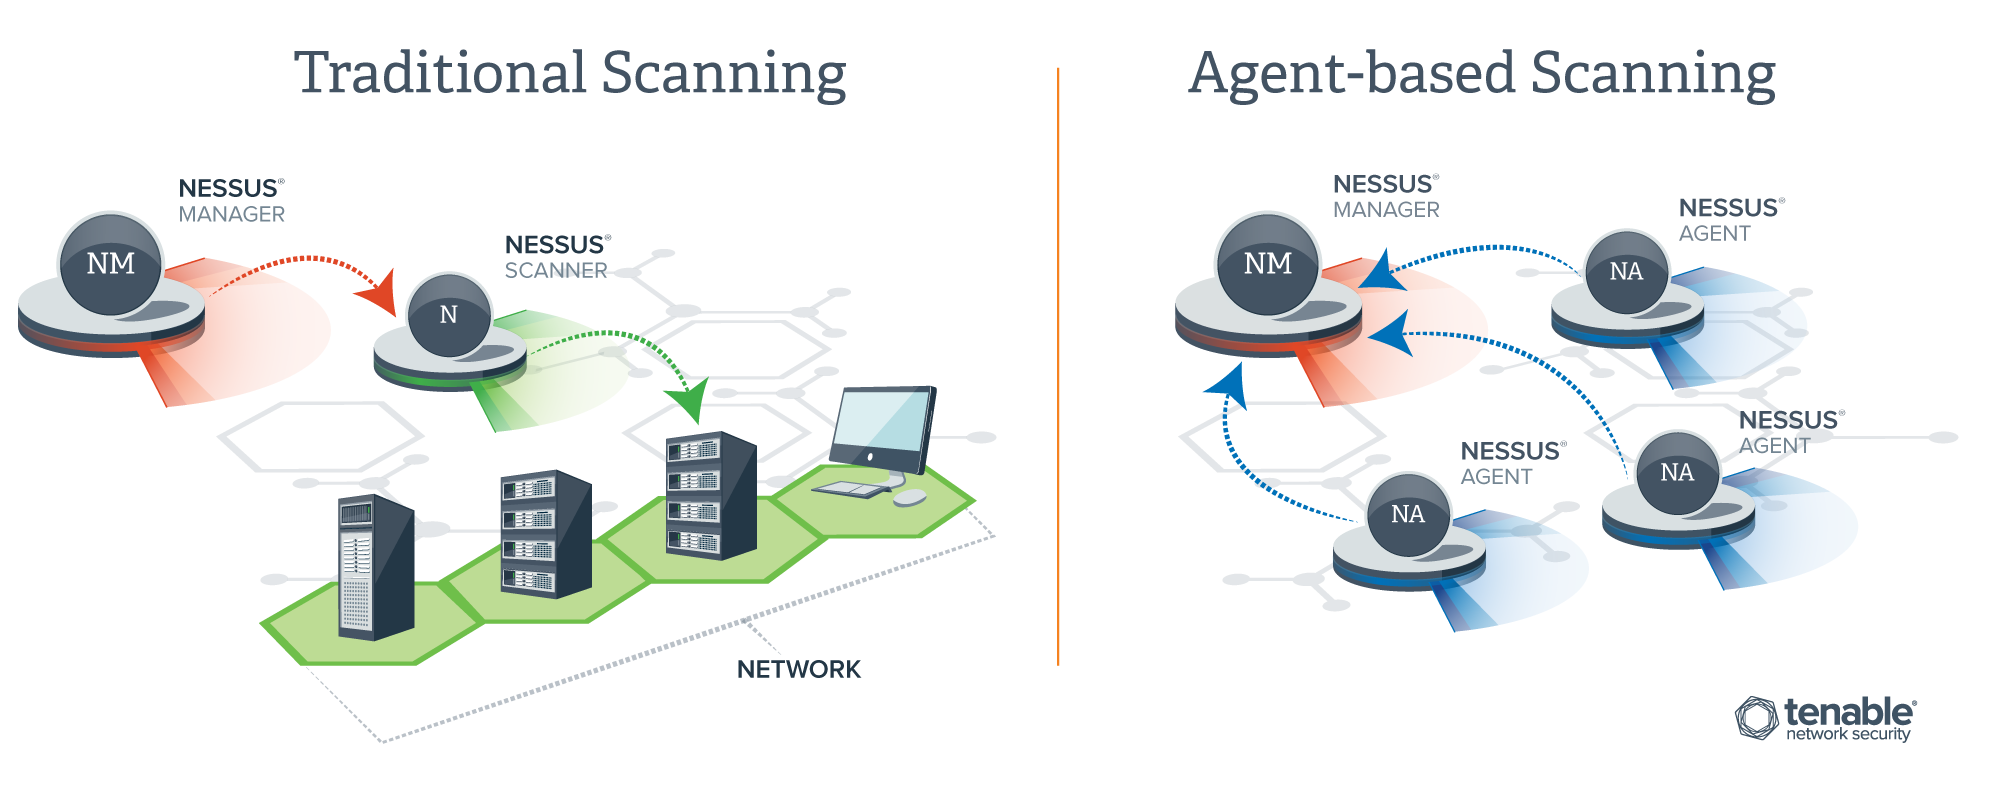 Traditional Scanning vs. Agent-Based Scanning